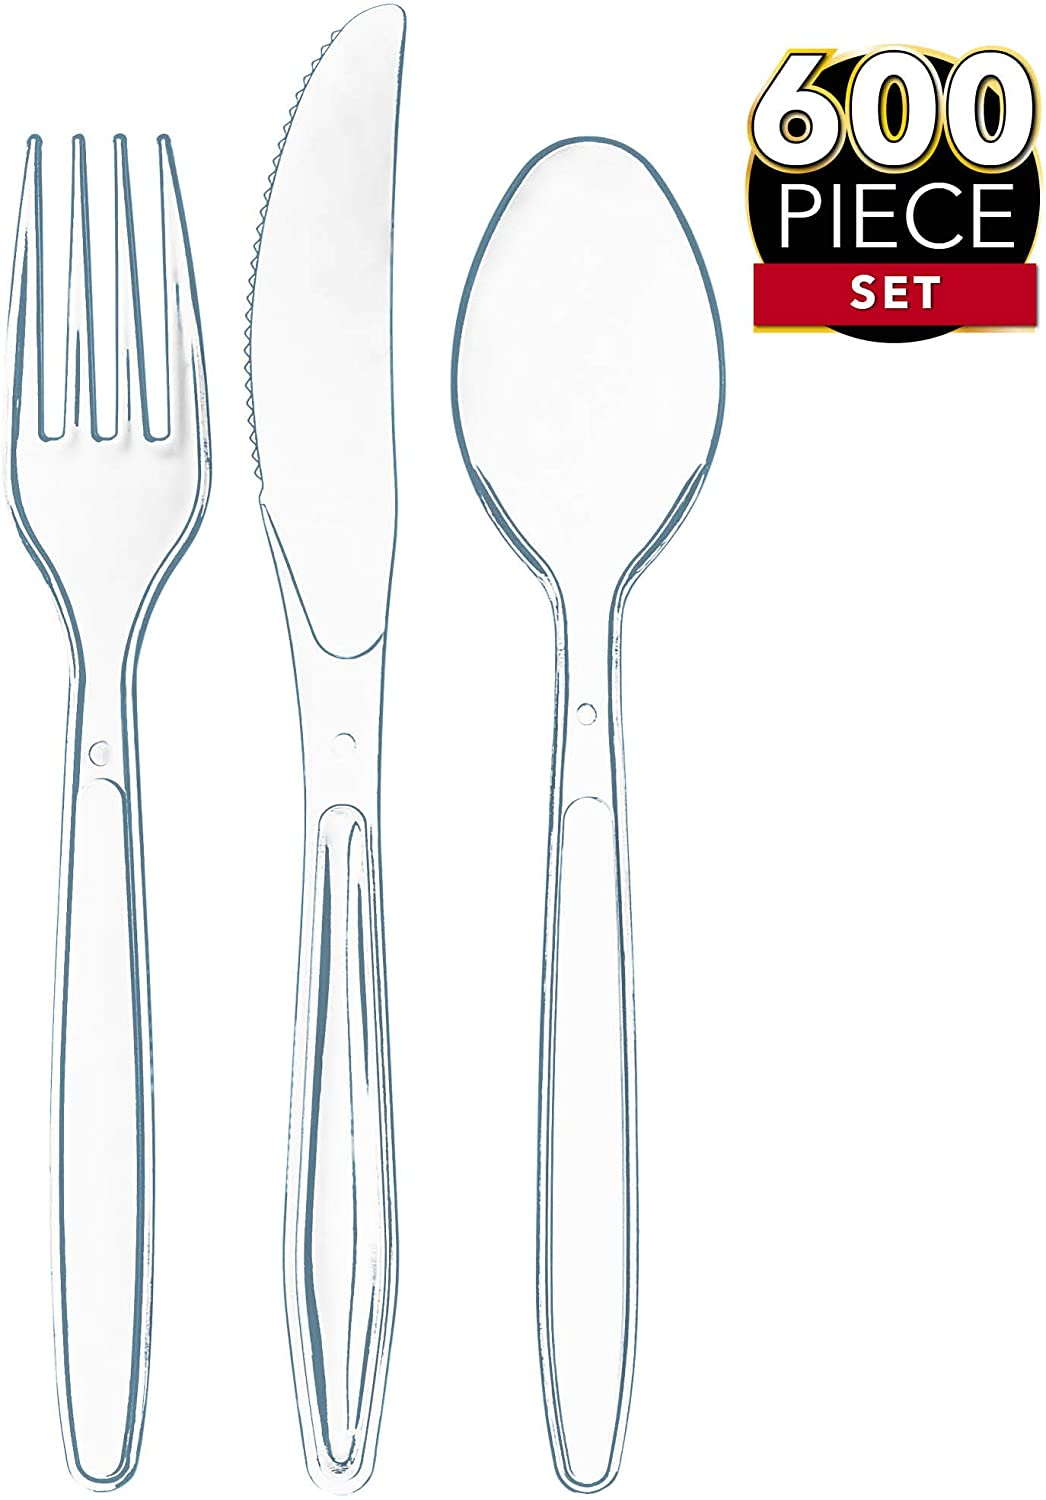 600 Clear Plastic Silverware Set | Disposable Plastic Utensils | 300 Plastic Forks, 200 Plastic Spoons, 100 Plastic Knives | Plastic Cutlery Set | Heavy Duty Bulk Flatware Set